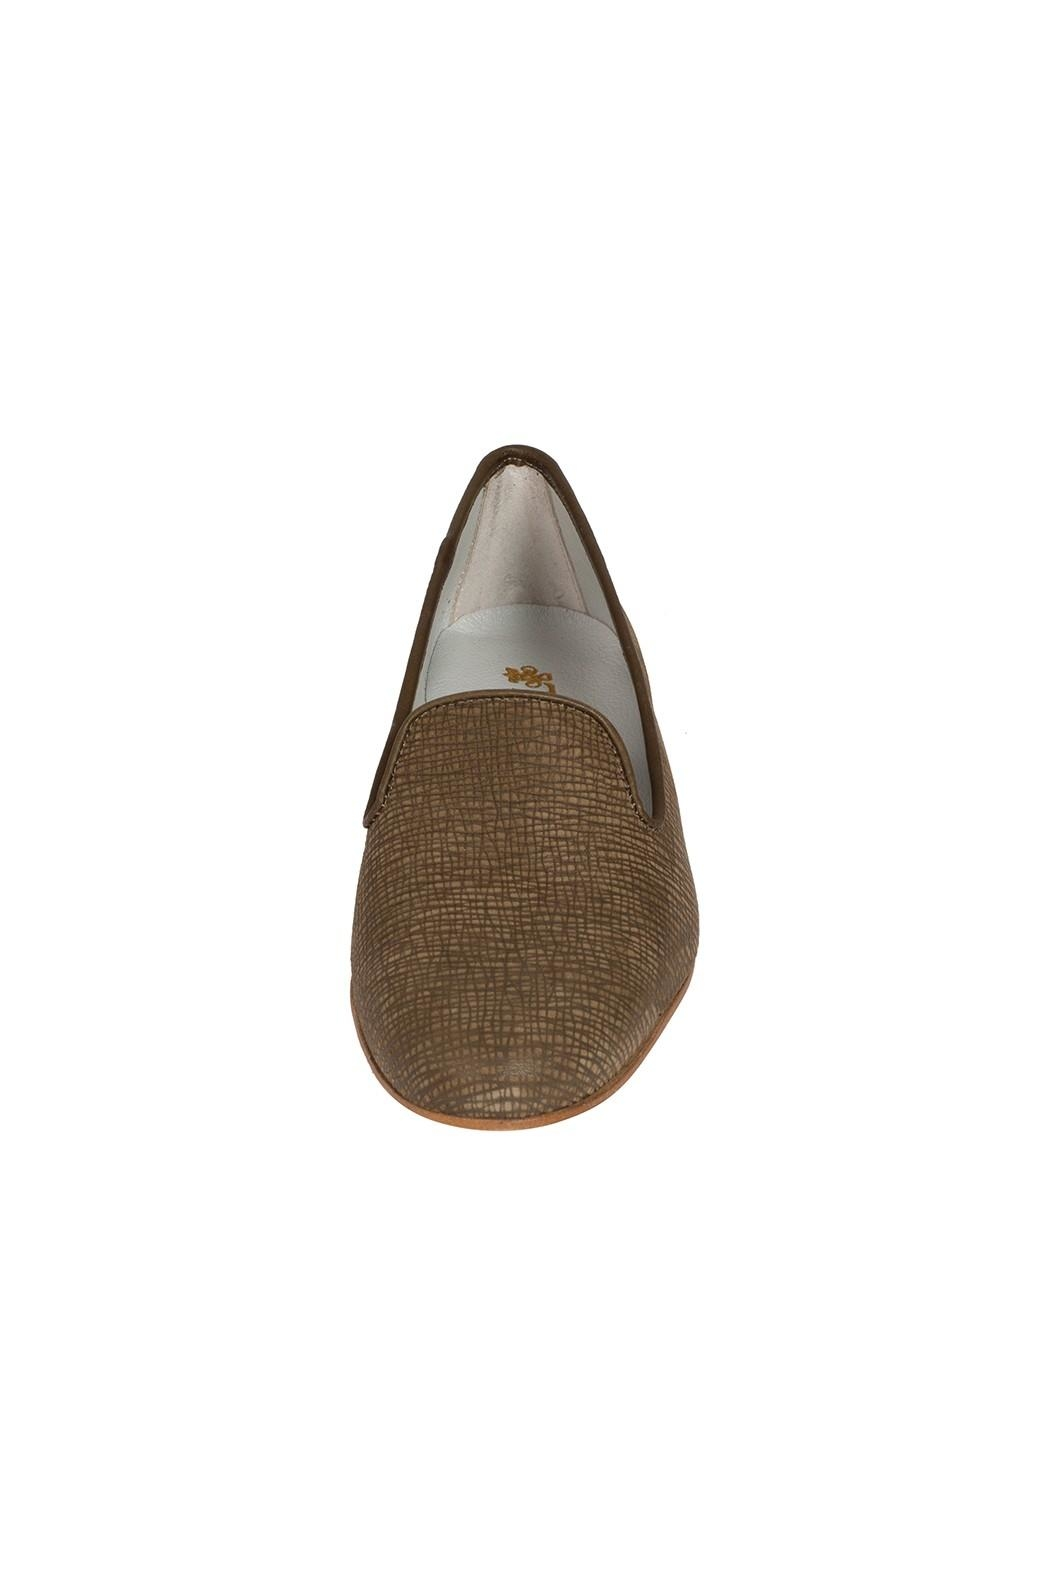 Pascucci Leather Olive-Green Smoking-Slipper - Side Cropped Image